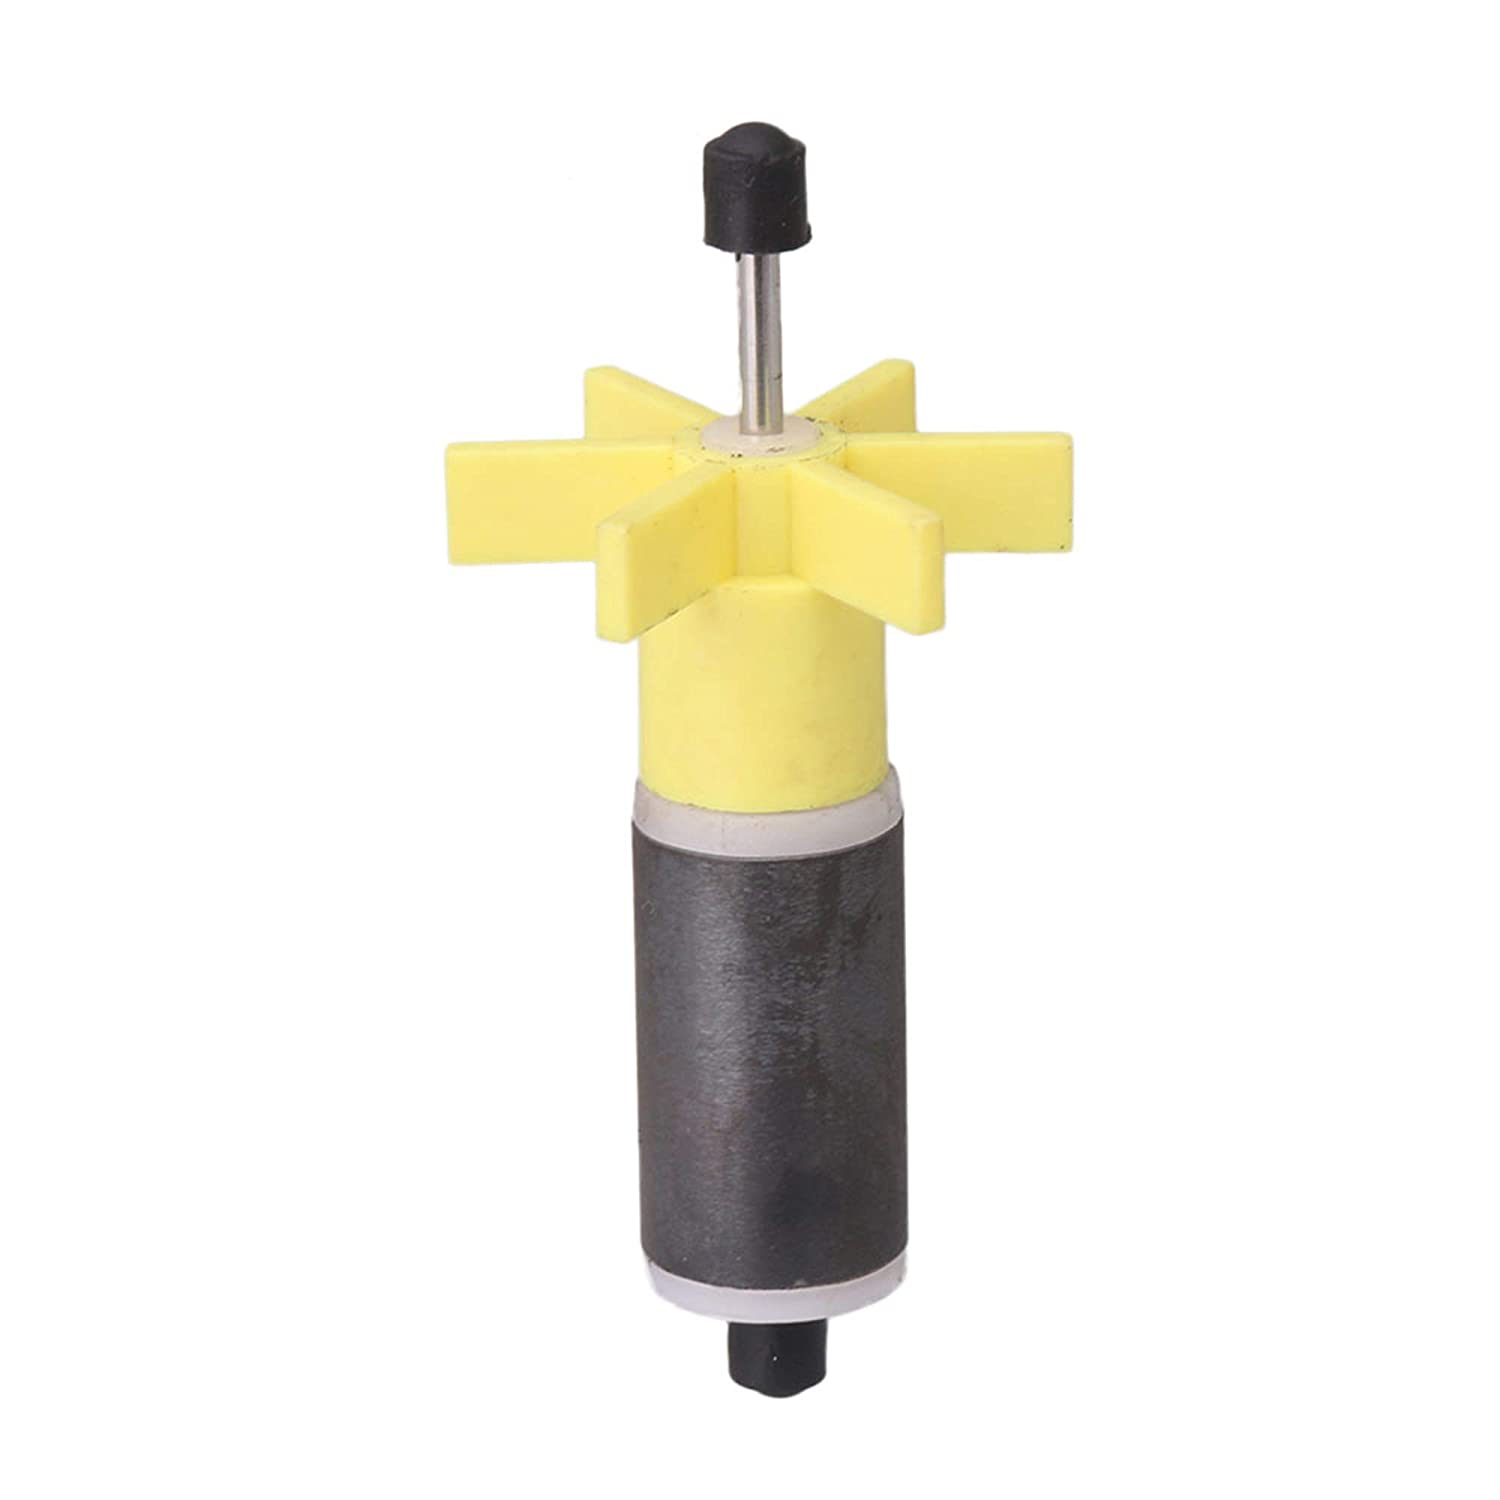 Submersible Pump Rotor Impeller with Shaft and Bearing Replacement Magnetic Filter 3'' Shaft length, 0.63'' Dia Yellow